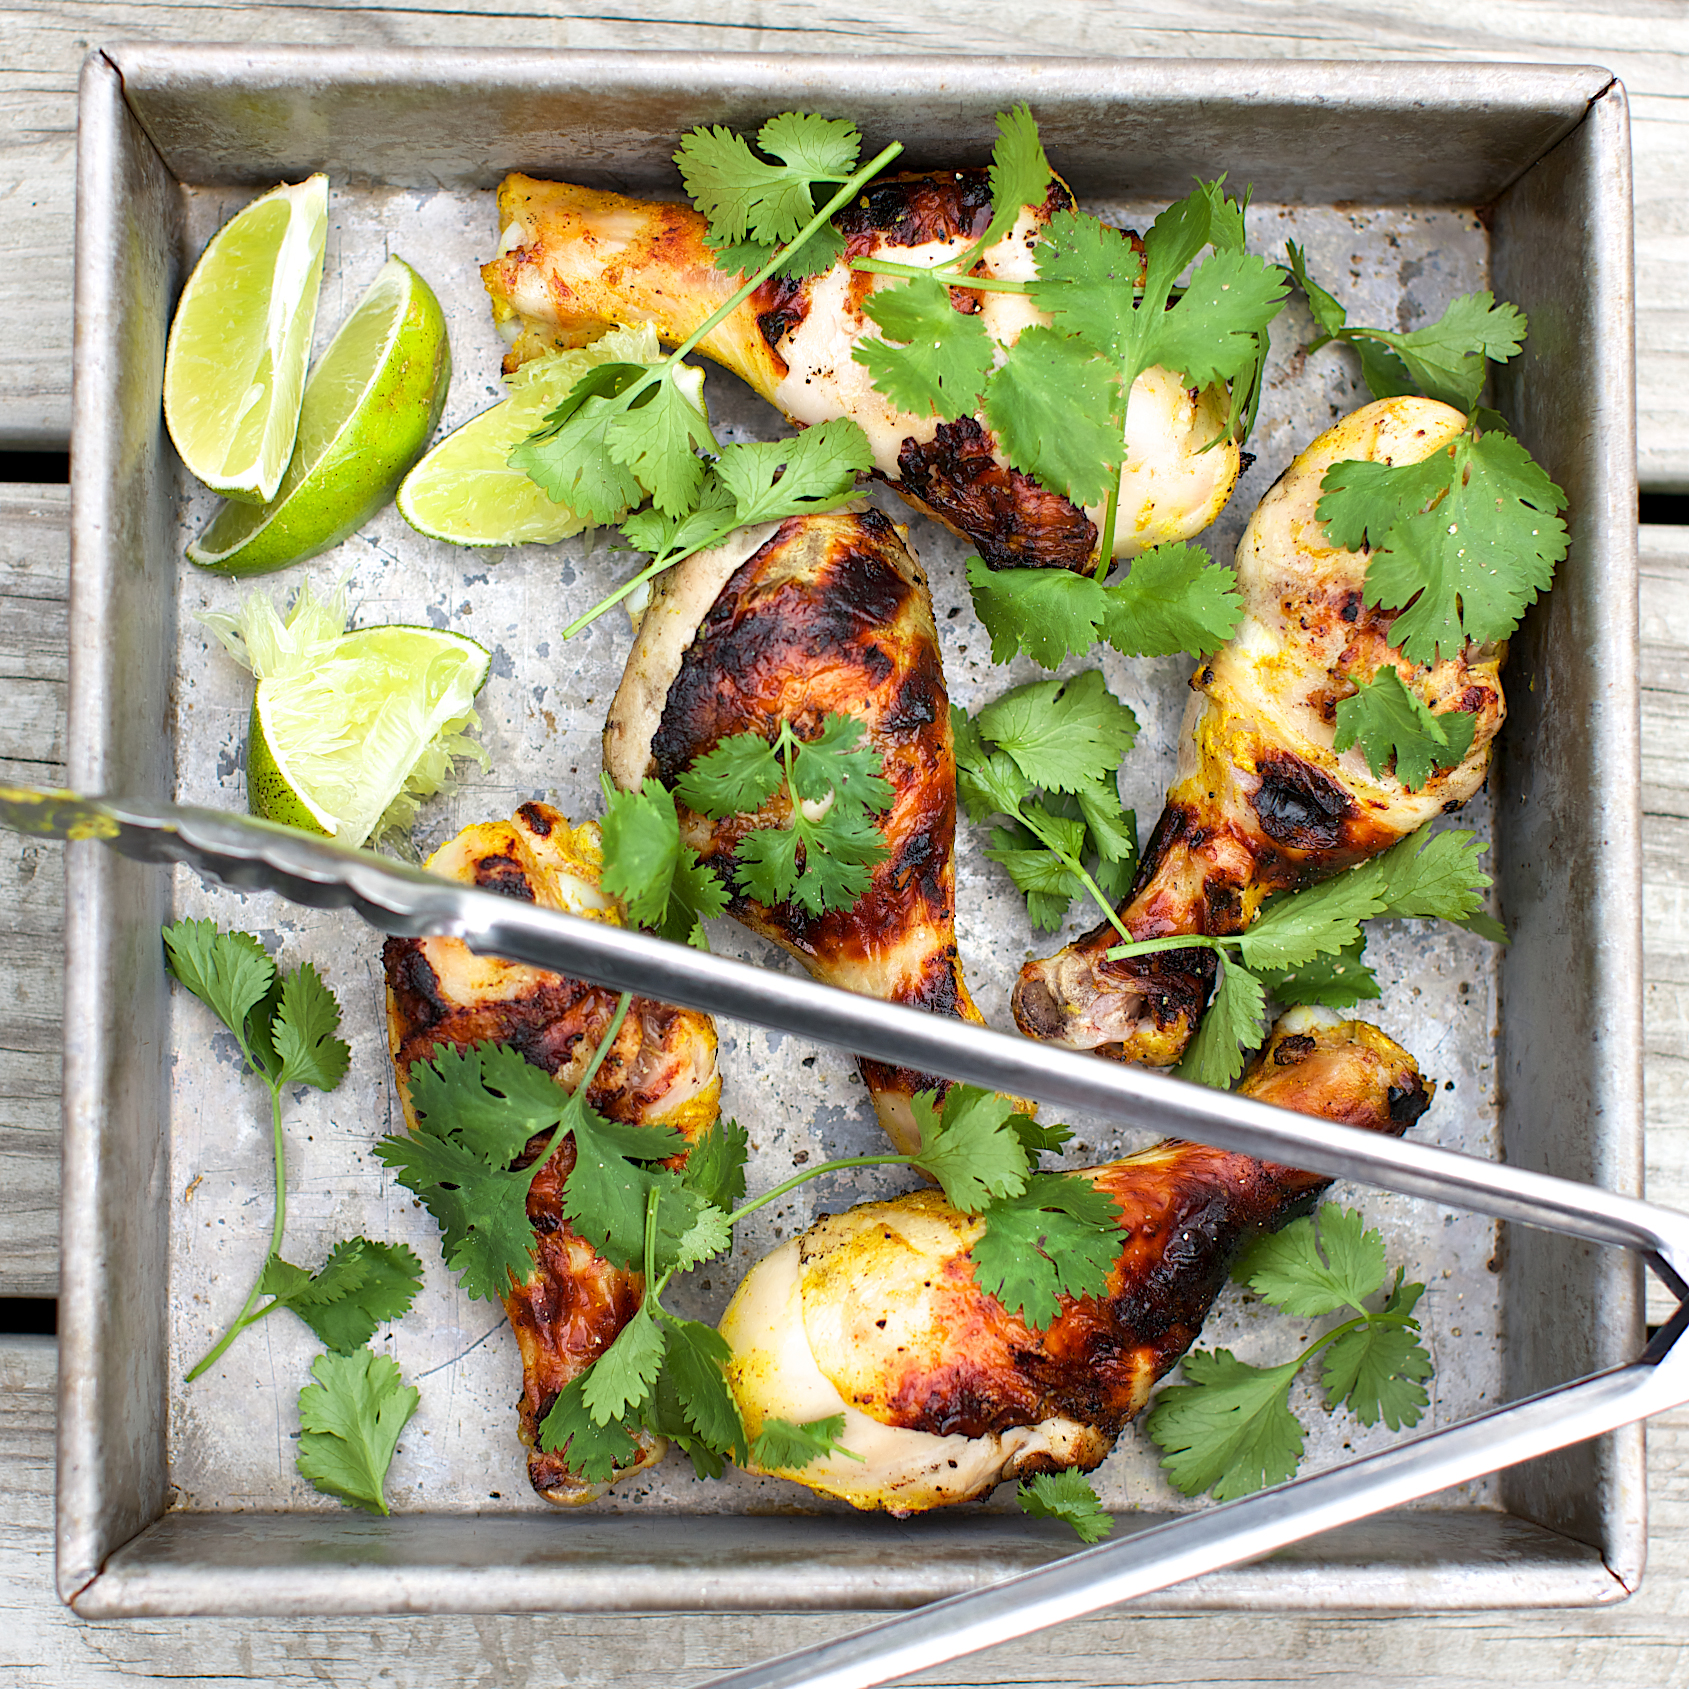 201408-r-grilled-curried-chicken-legs.jpg